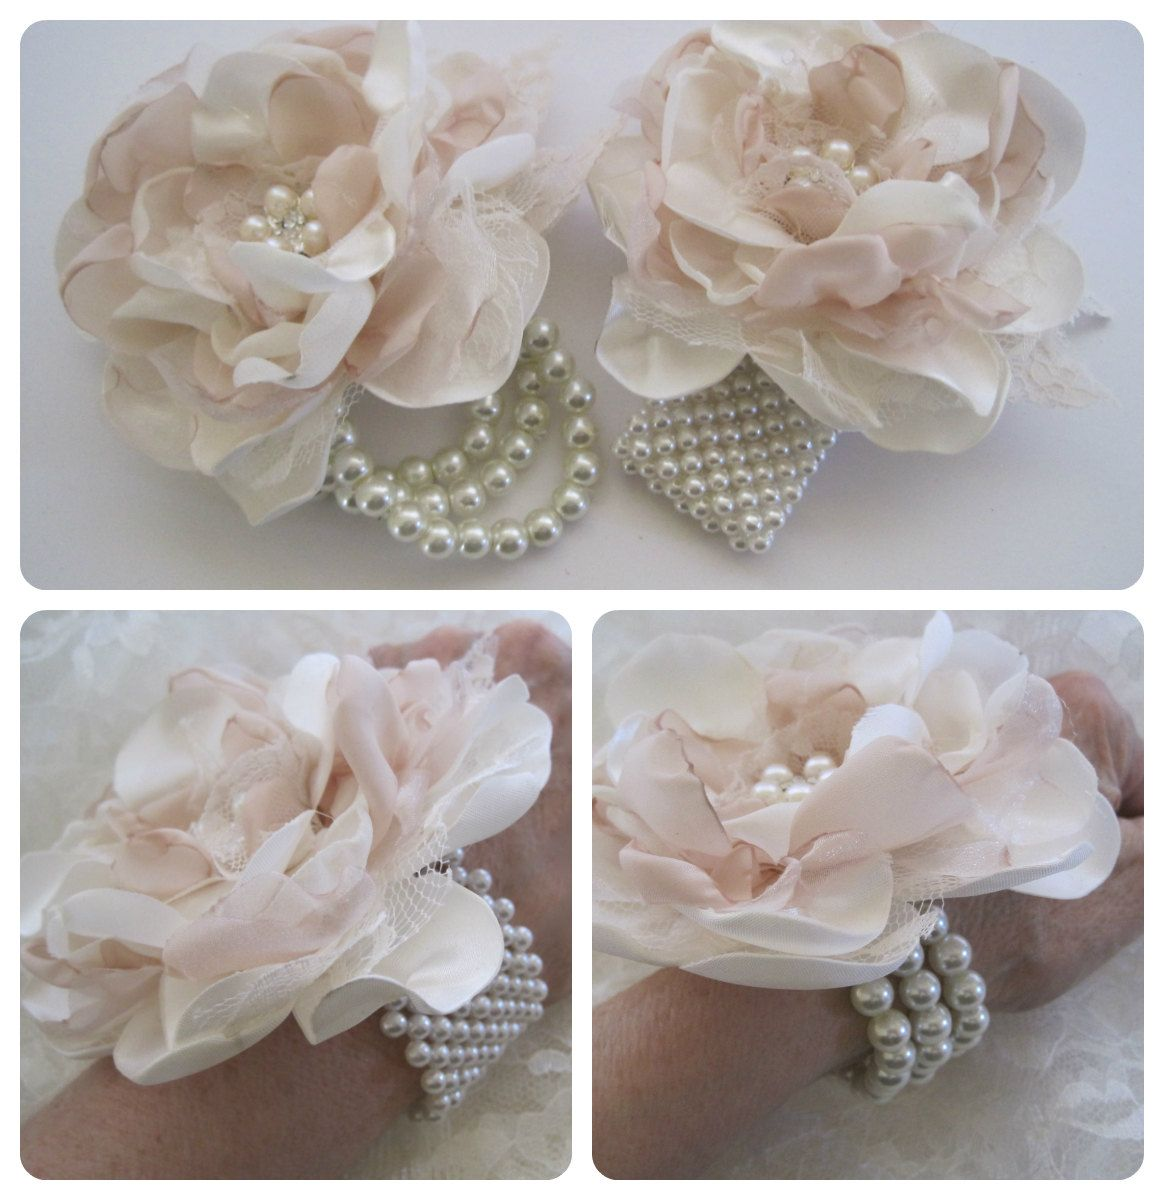 Ivory Mother Of Pearl Floor Vase In 2019: Wrist Corsage Ivory And Champagne Romantic Rose Pearl Cuff